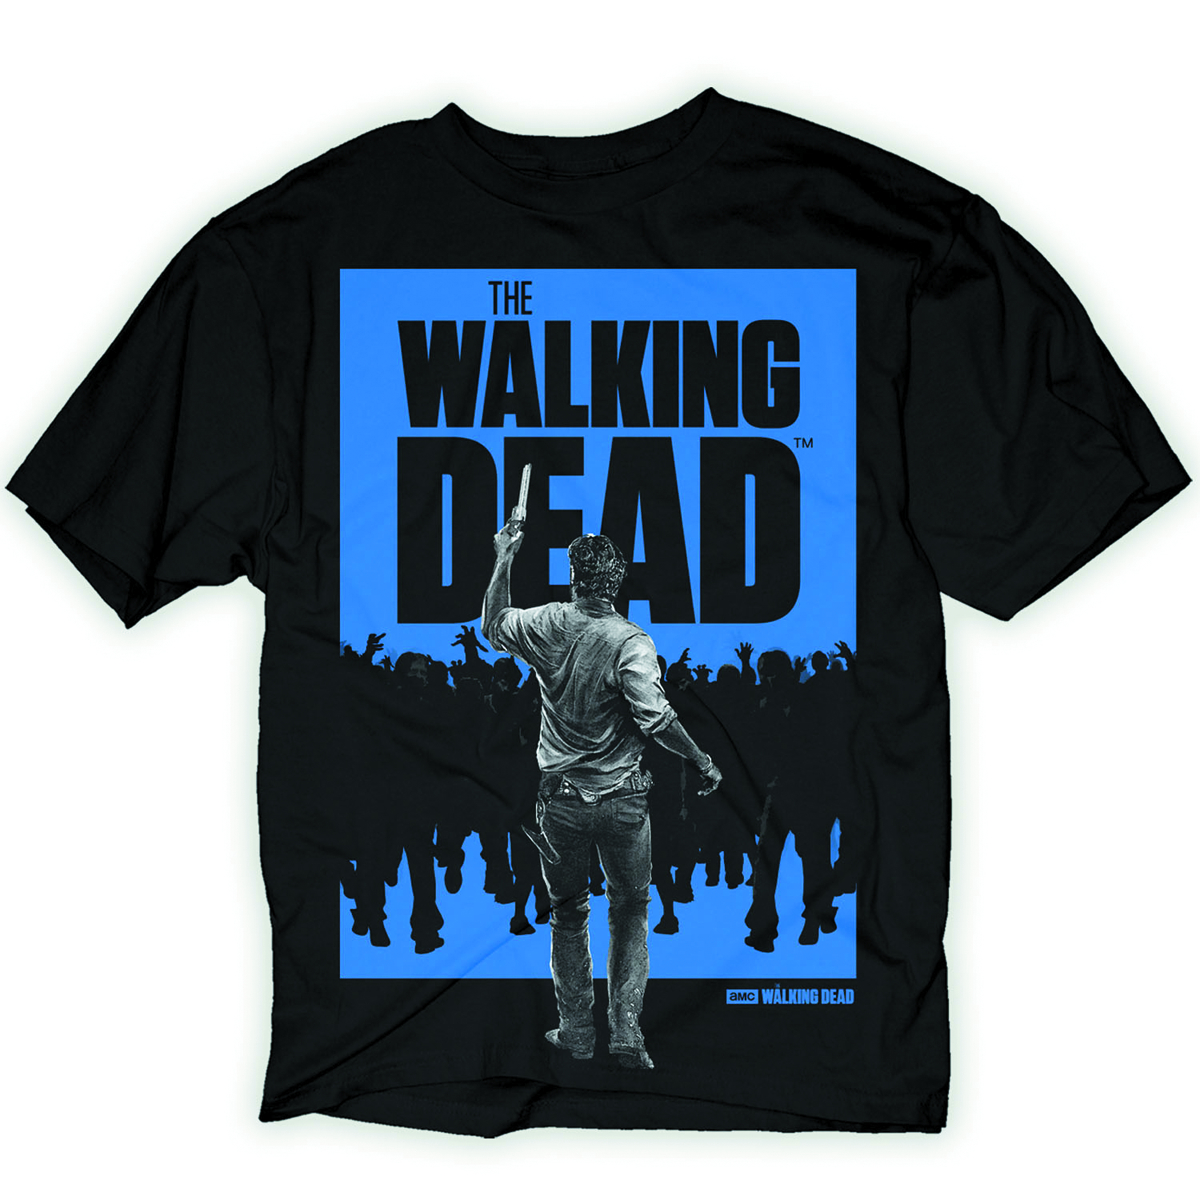 WALKING DEAD RICK WALKER PX BLK T/S MED